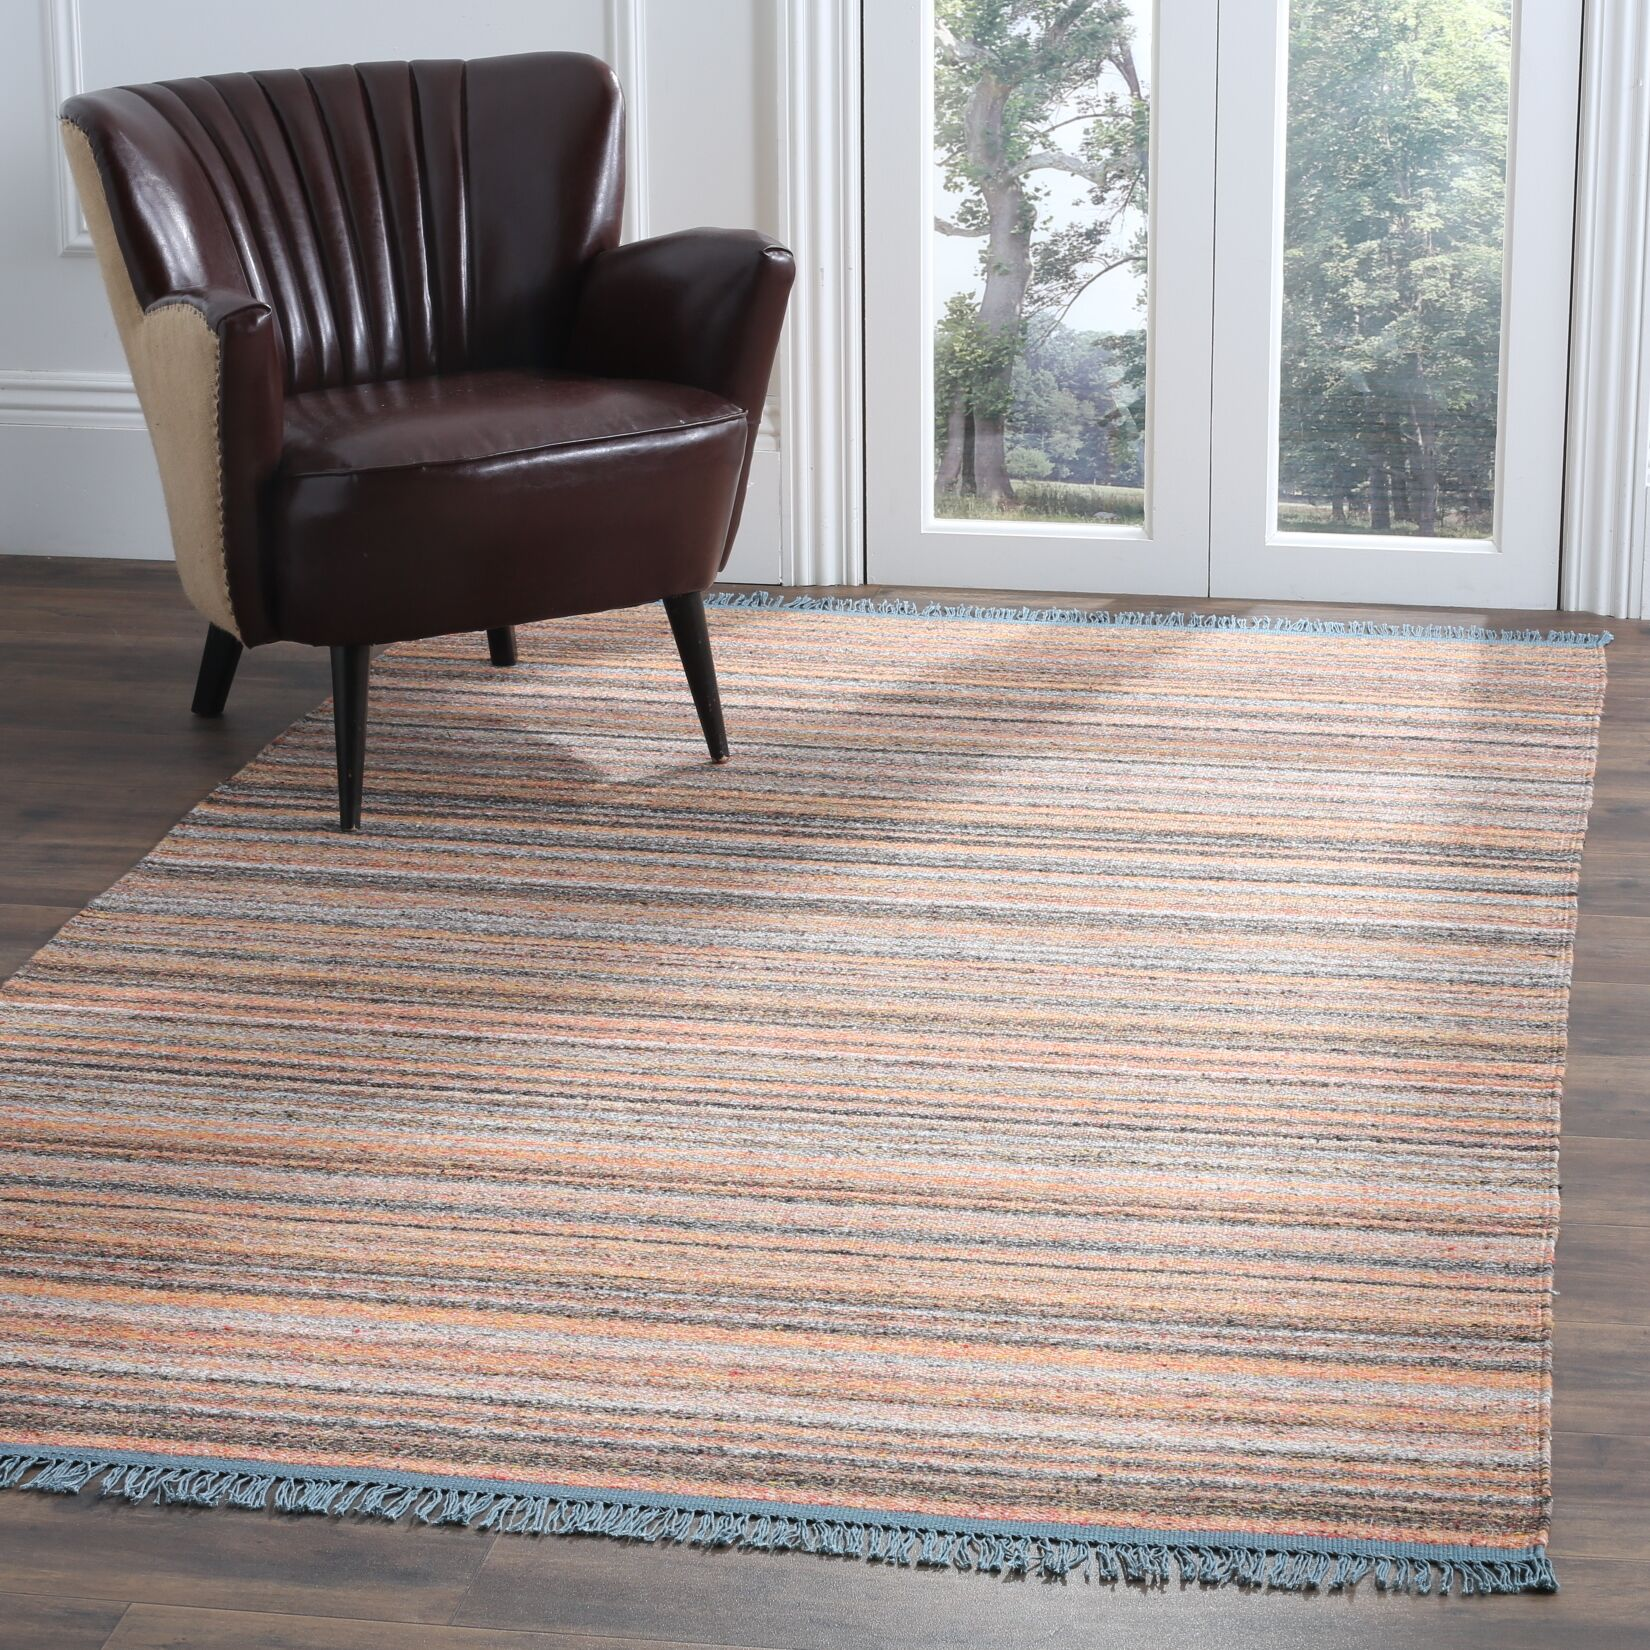 Sojourn Hand-Woven Orange/Blue Area Rug Rug Size: Rectangle 5' x 8'